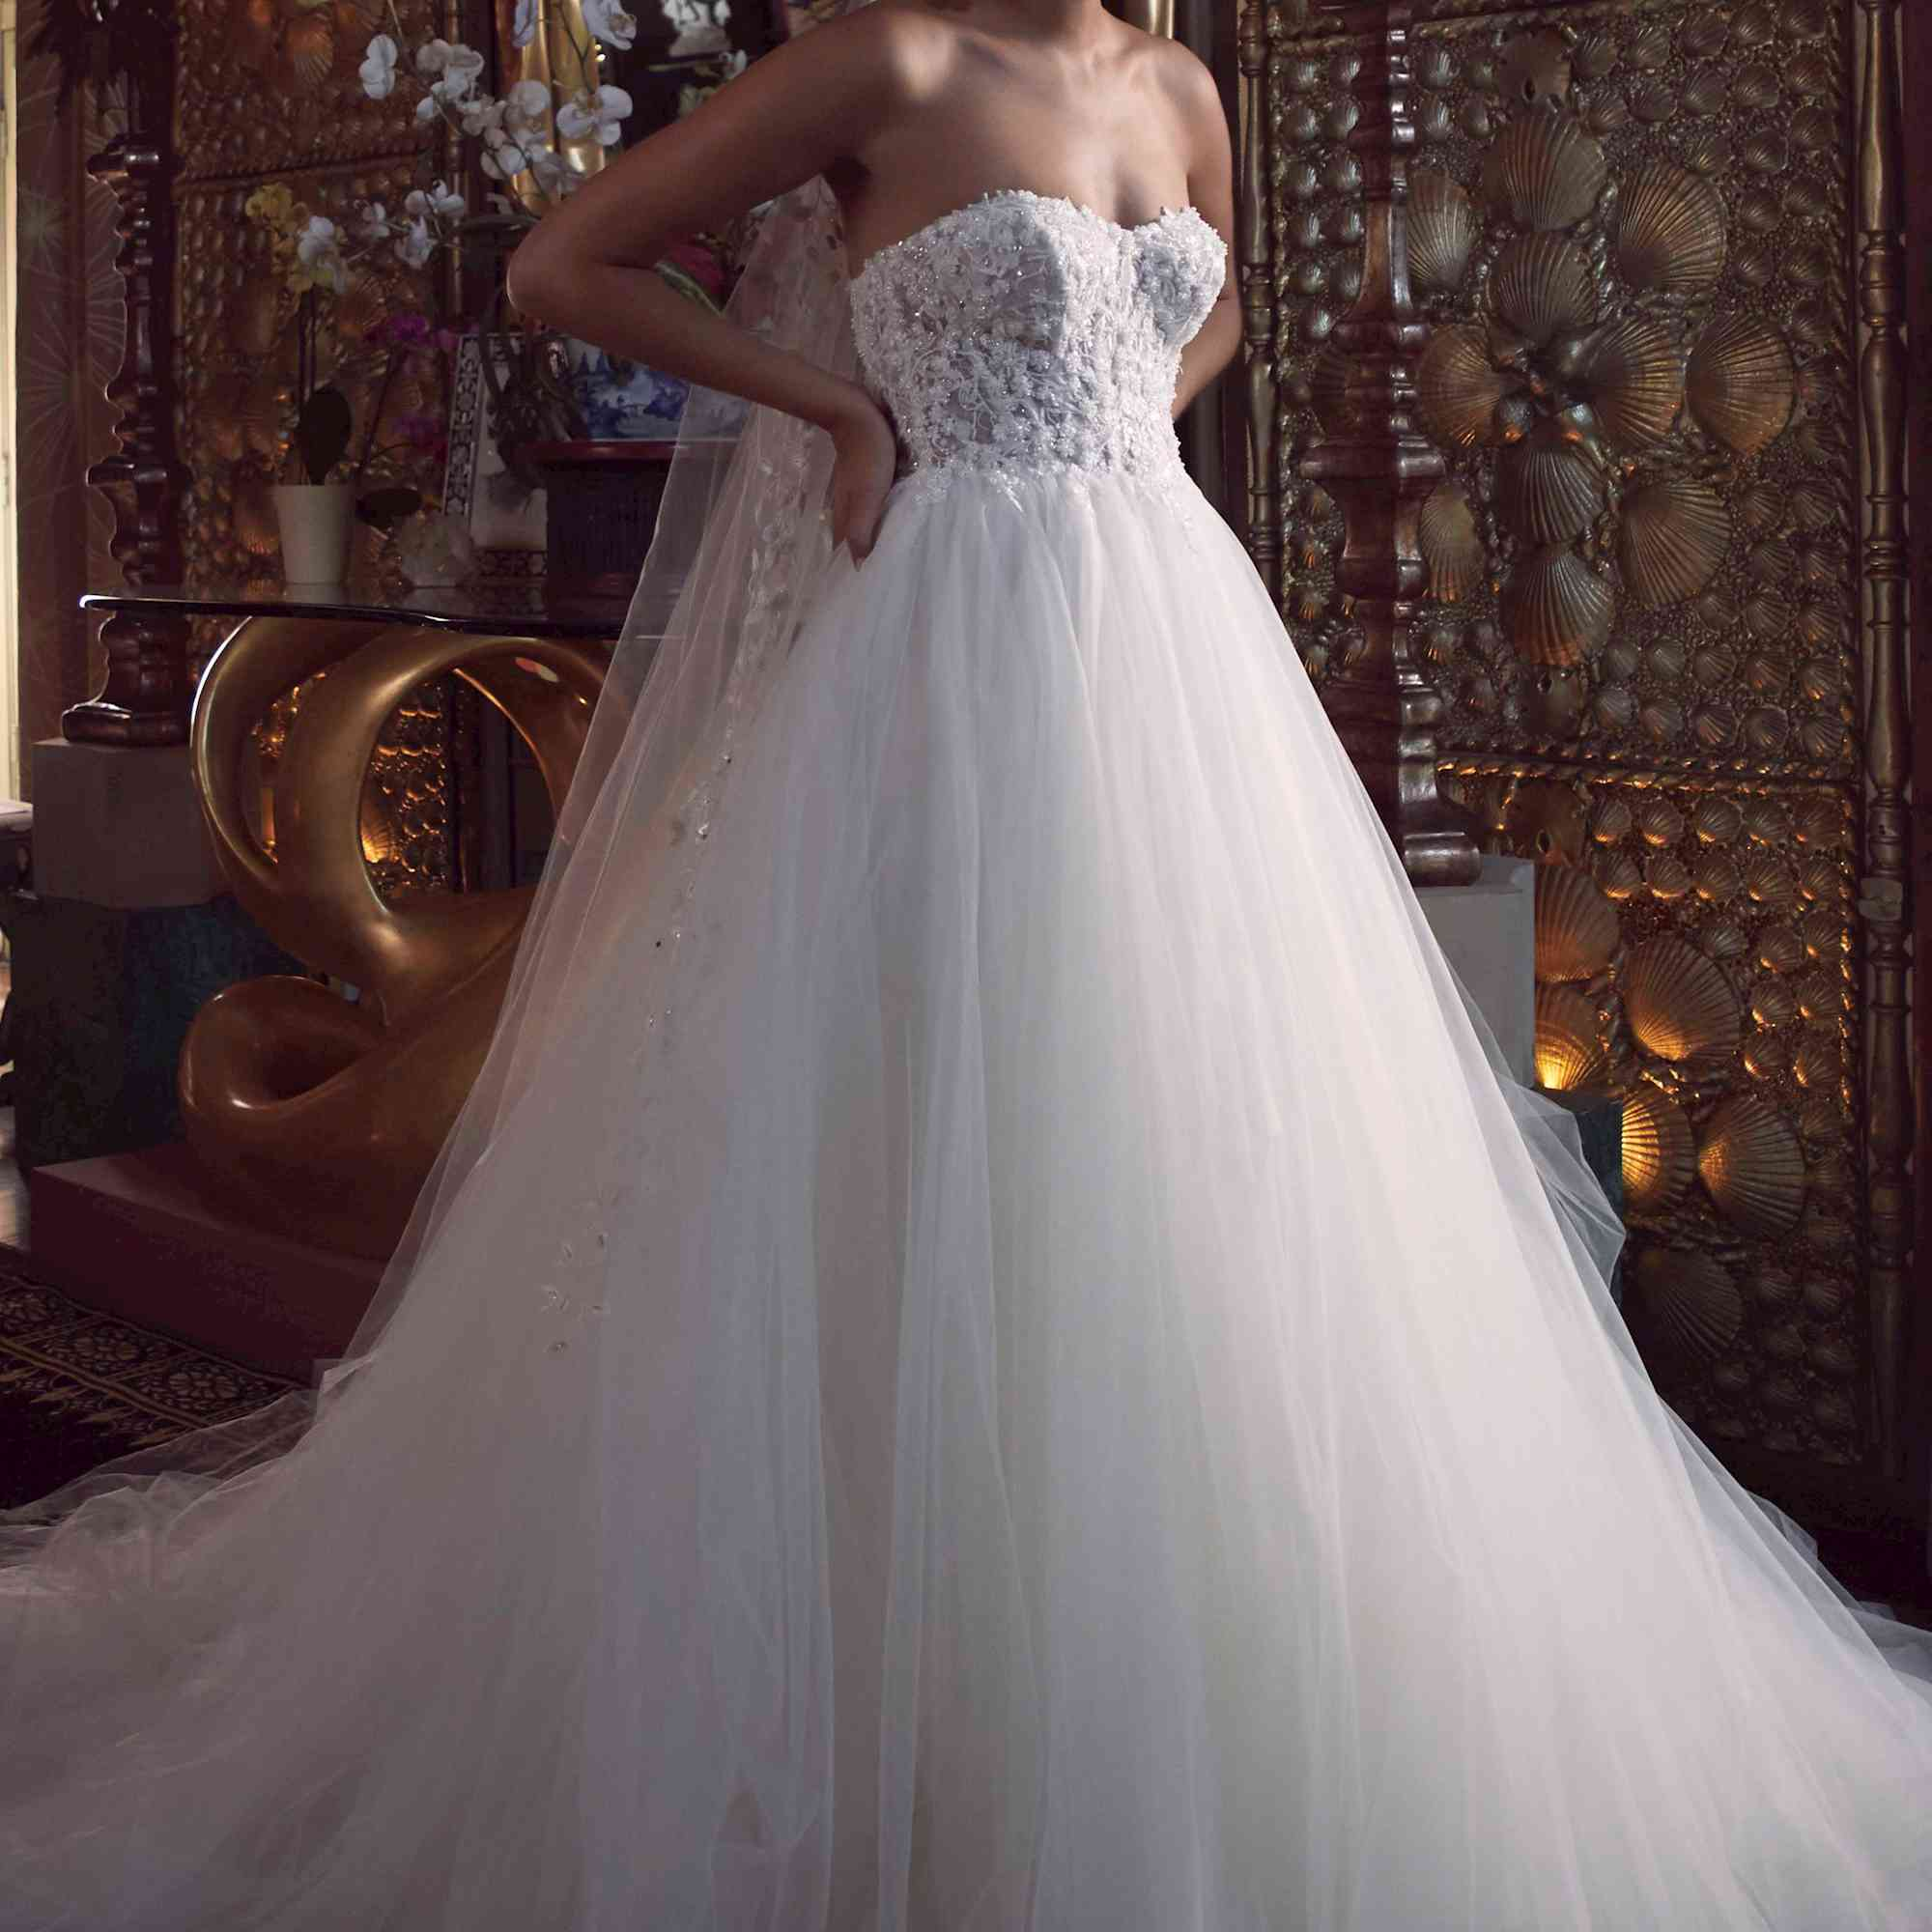 62 Princess Wedding Dresses Fit For A Royal Wedding